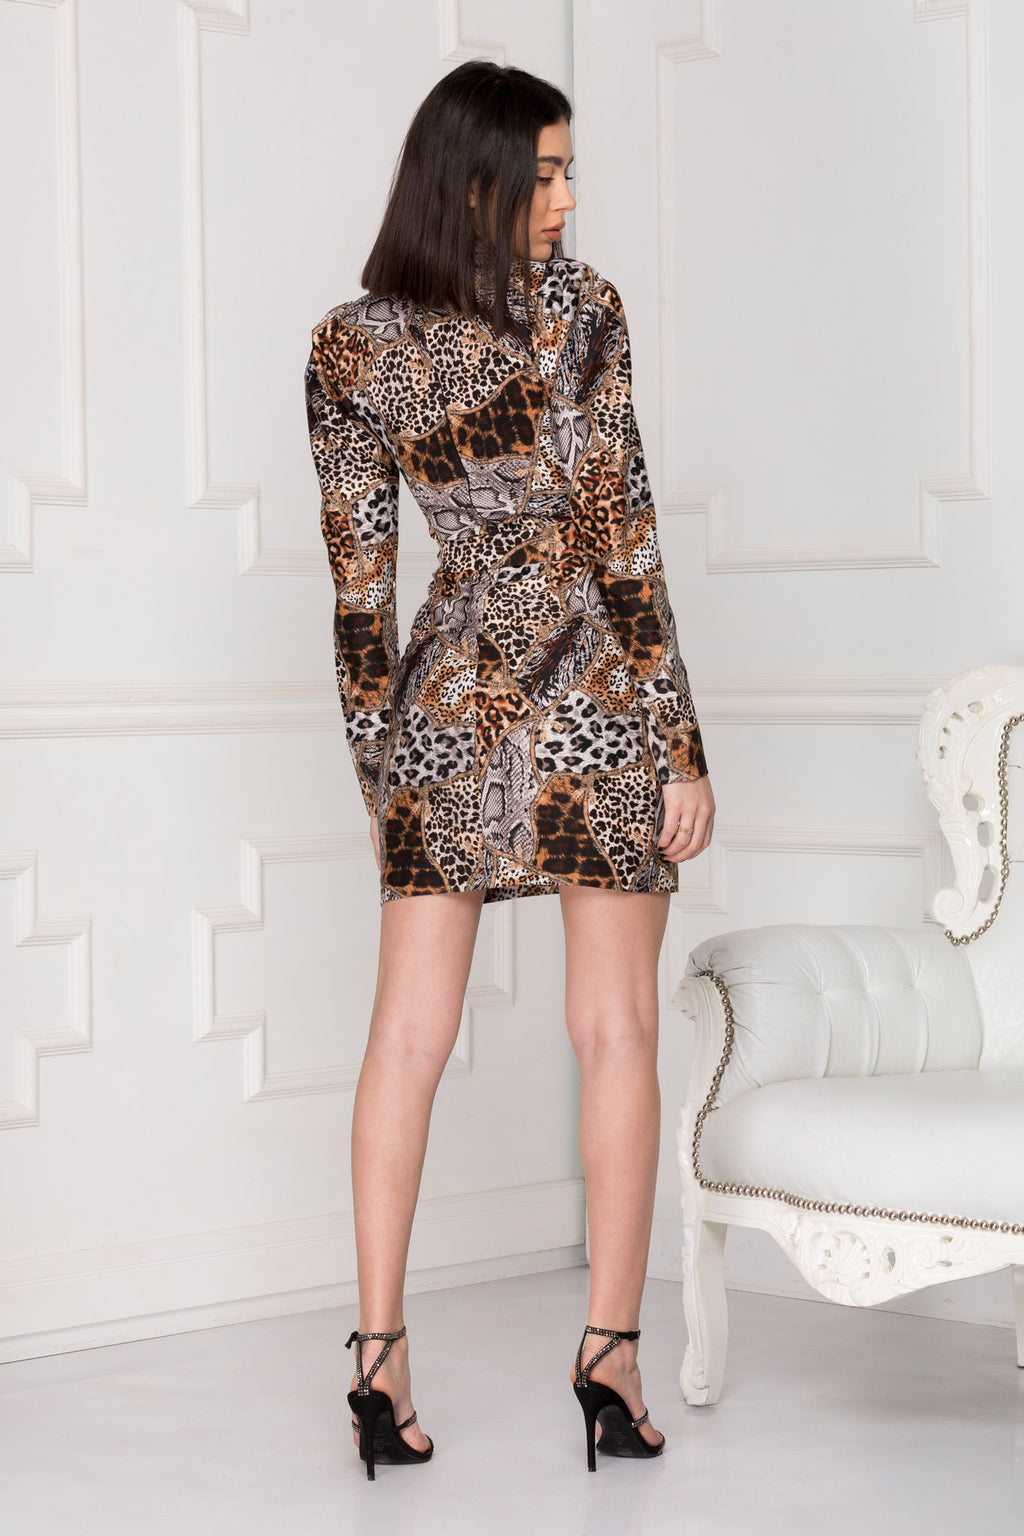 Leopard Print Dress full back details.